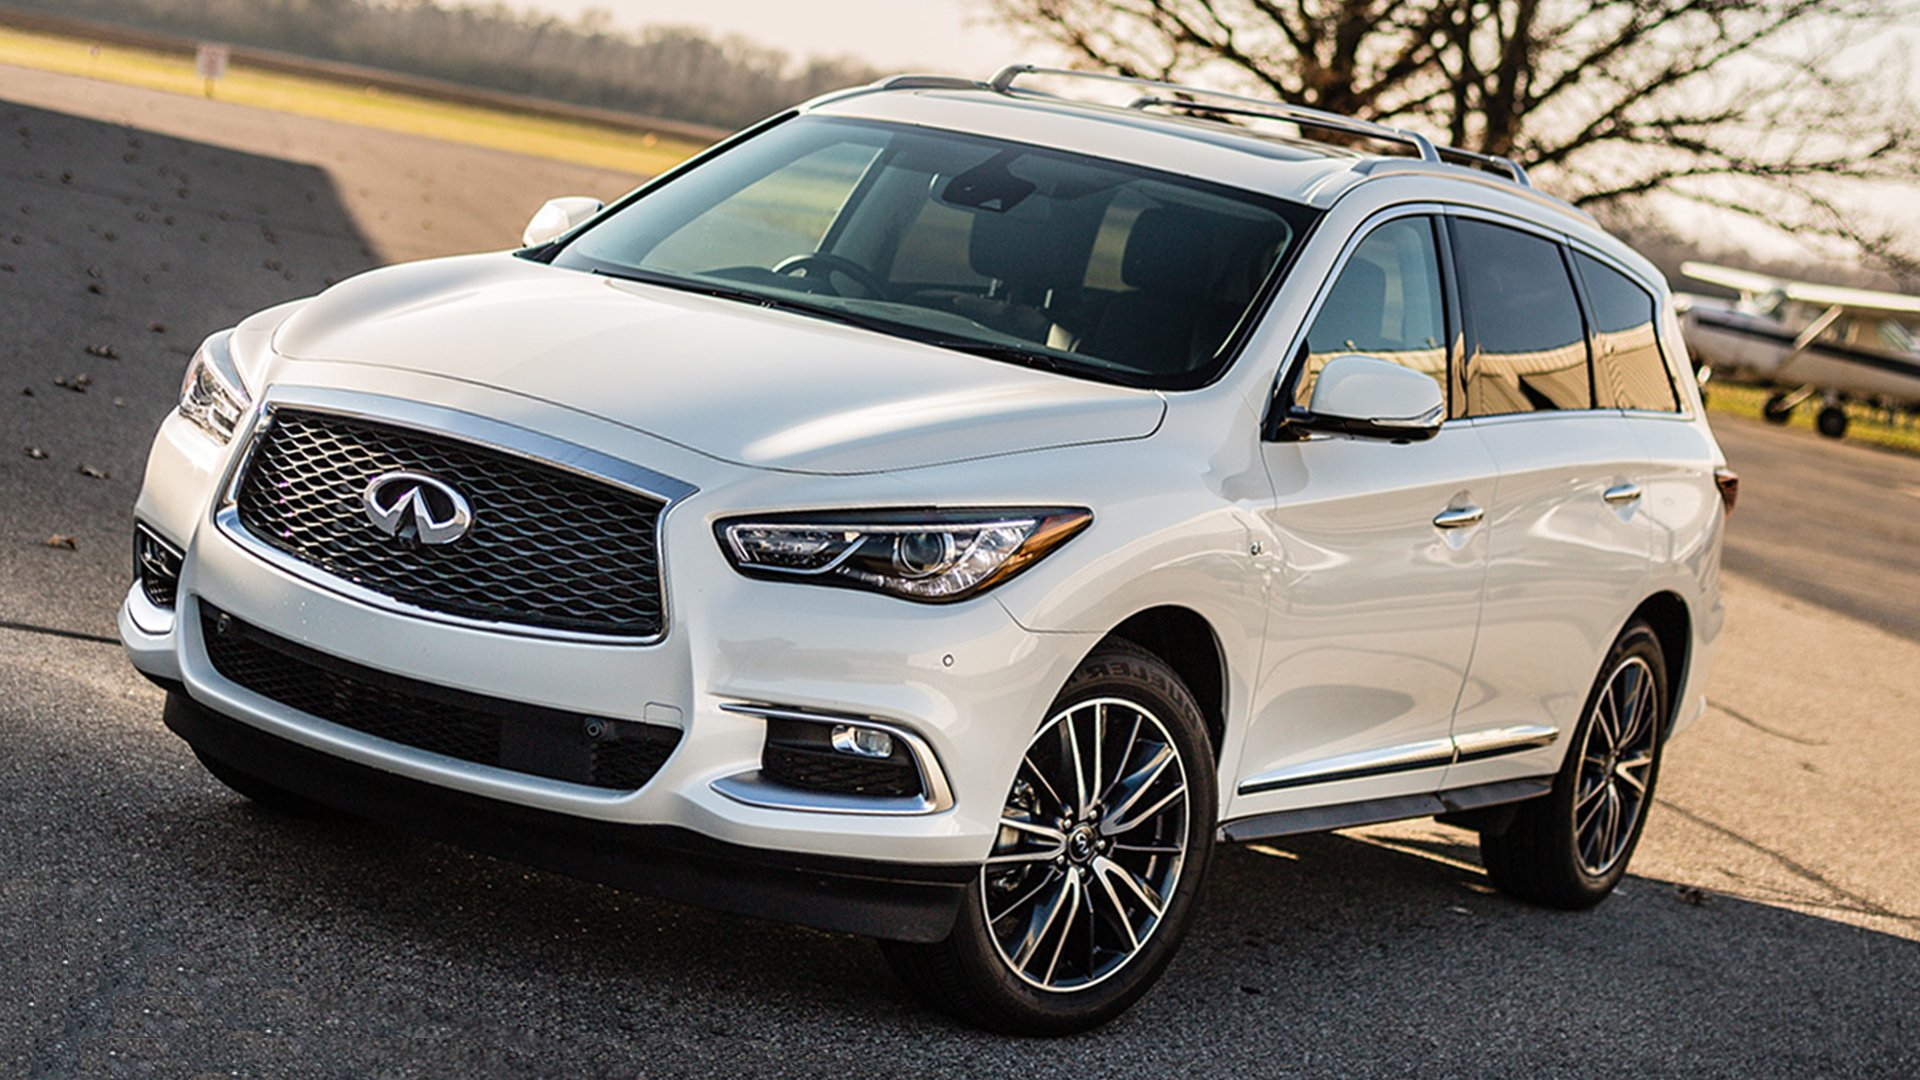 New 2019 Infiniti QX60 First Pictures